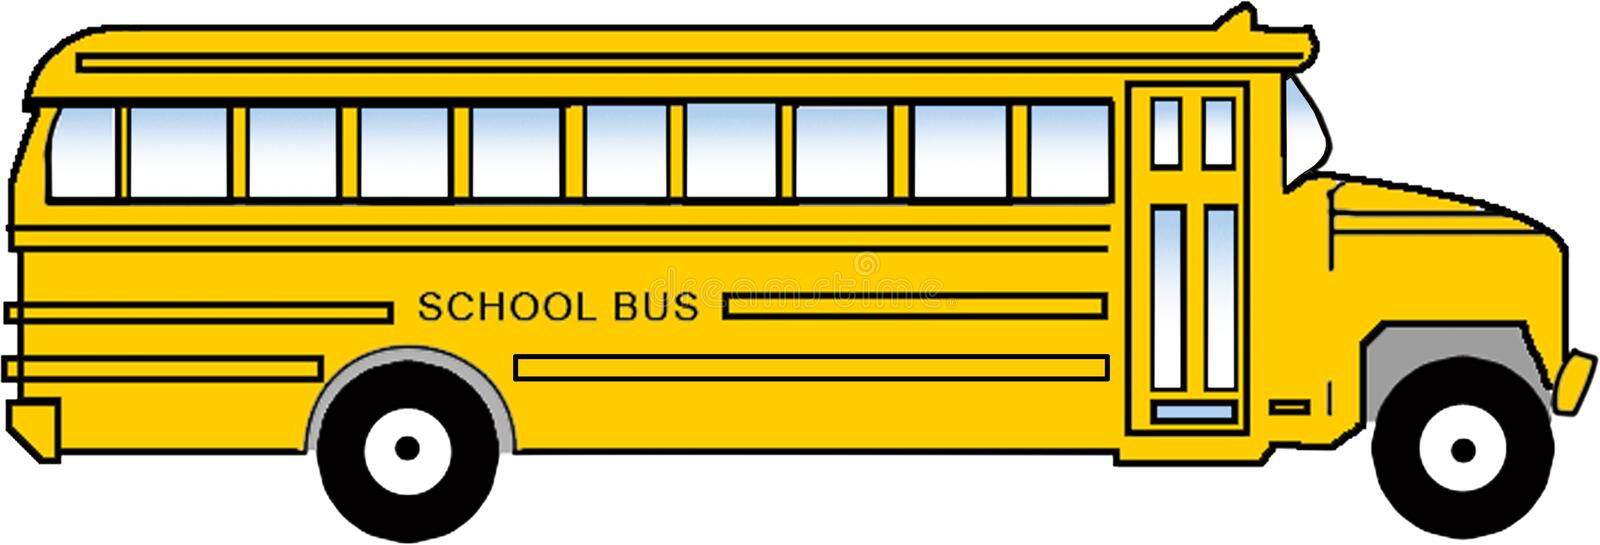 De Bus Clipart van de school stock illustratie